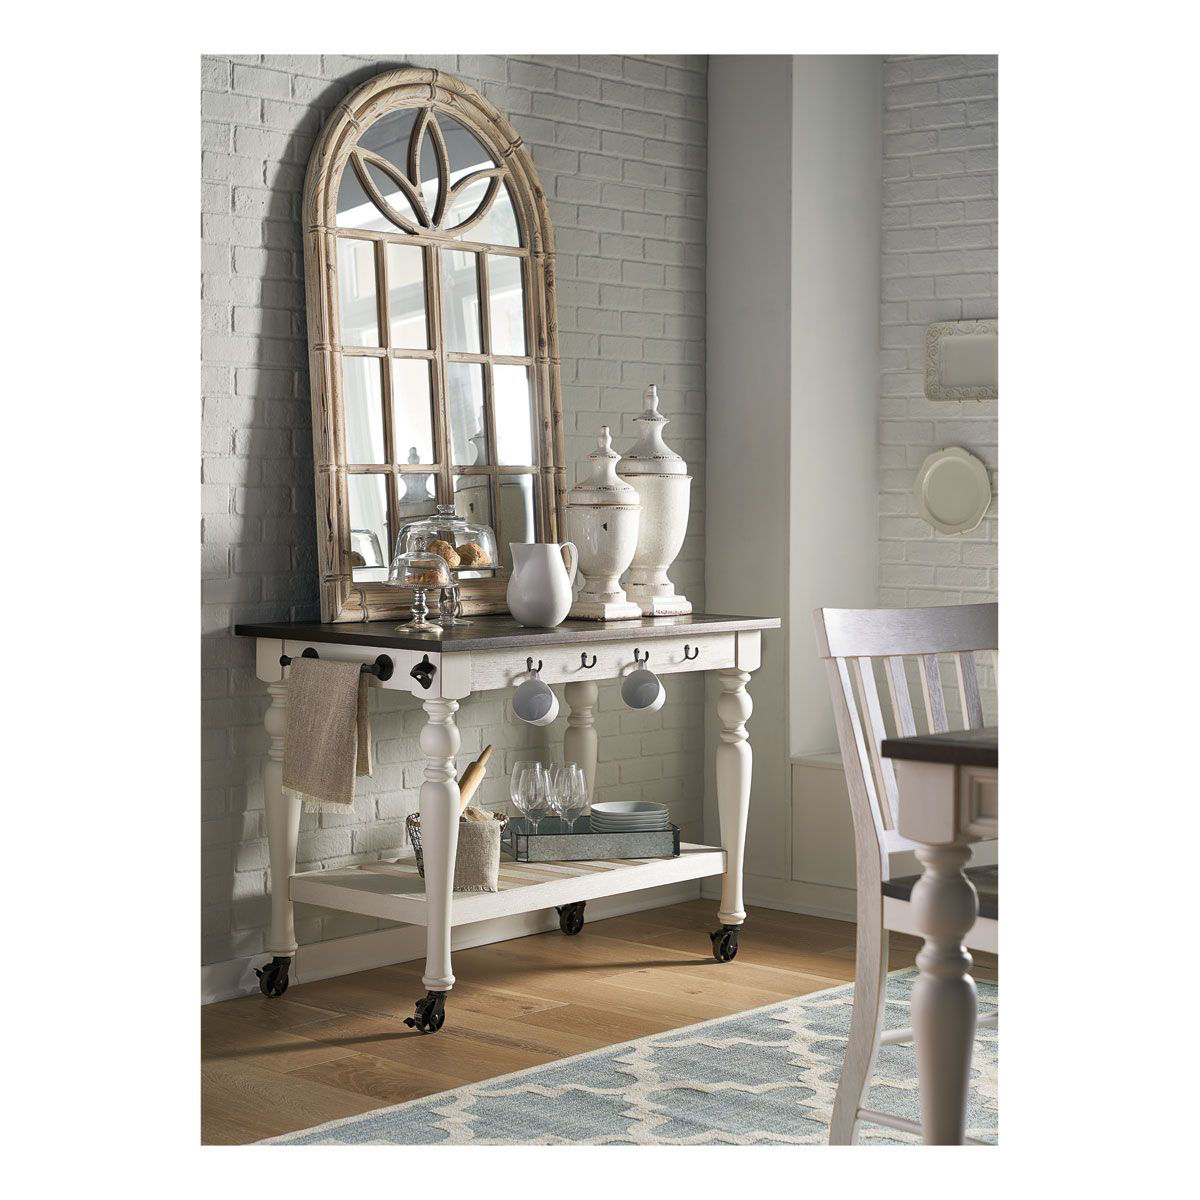 Picture of BRIARWOOD KITCHEN ISLAND